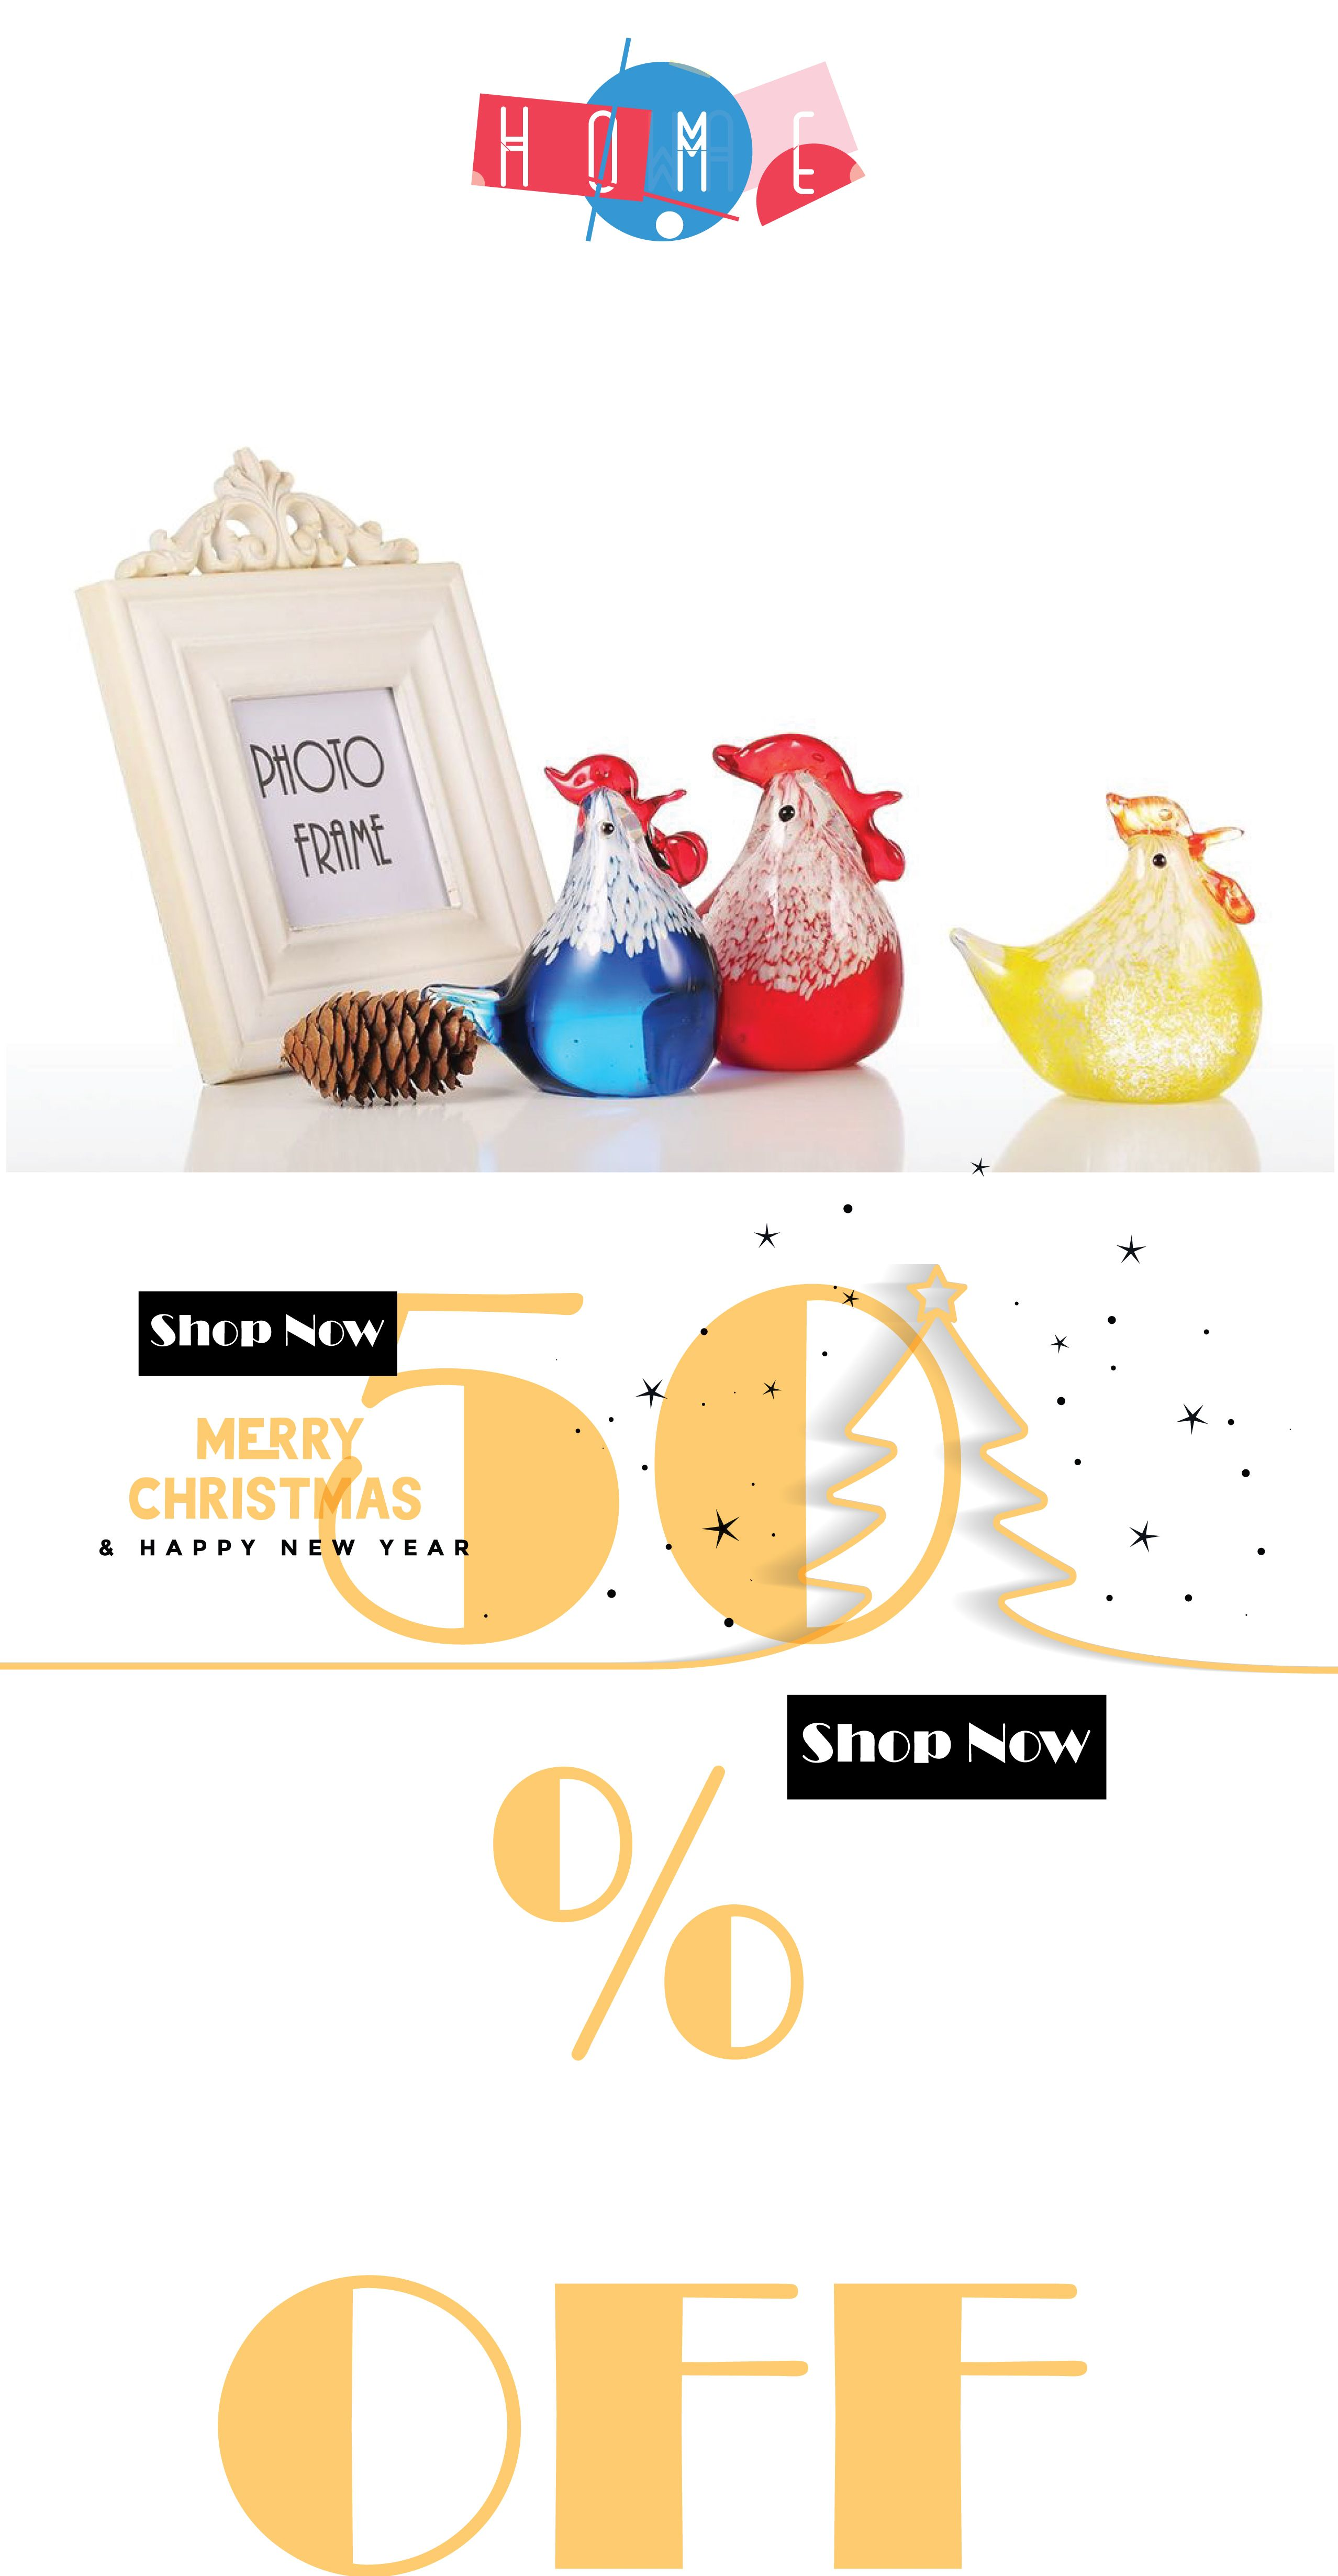 Black Friday 2019 Christmas Gift Ideas Christmas Gift Ideas for Rustic and Farmhouse Lifestyle #Chicken